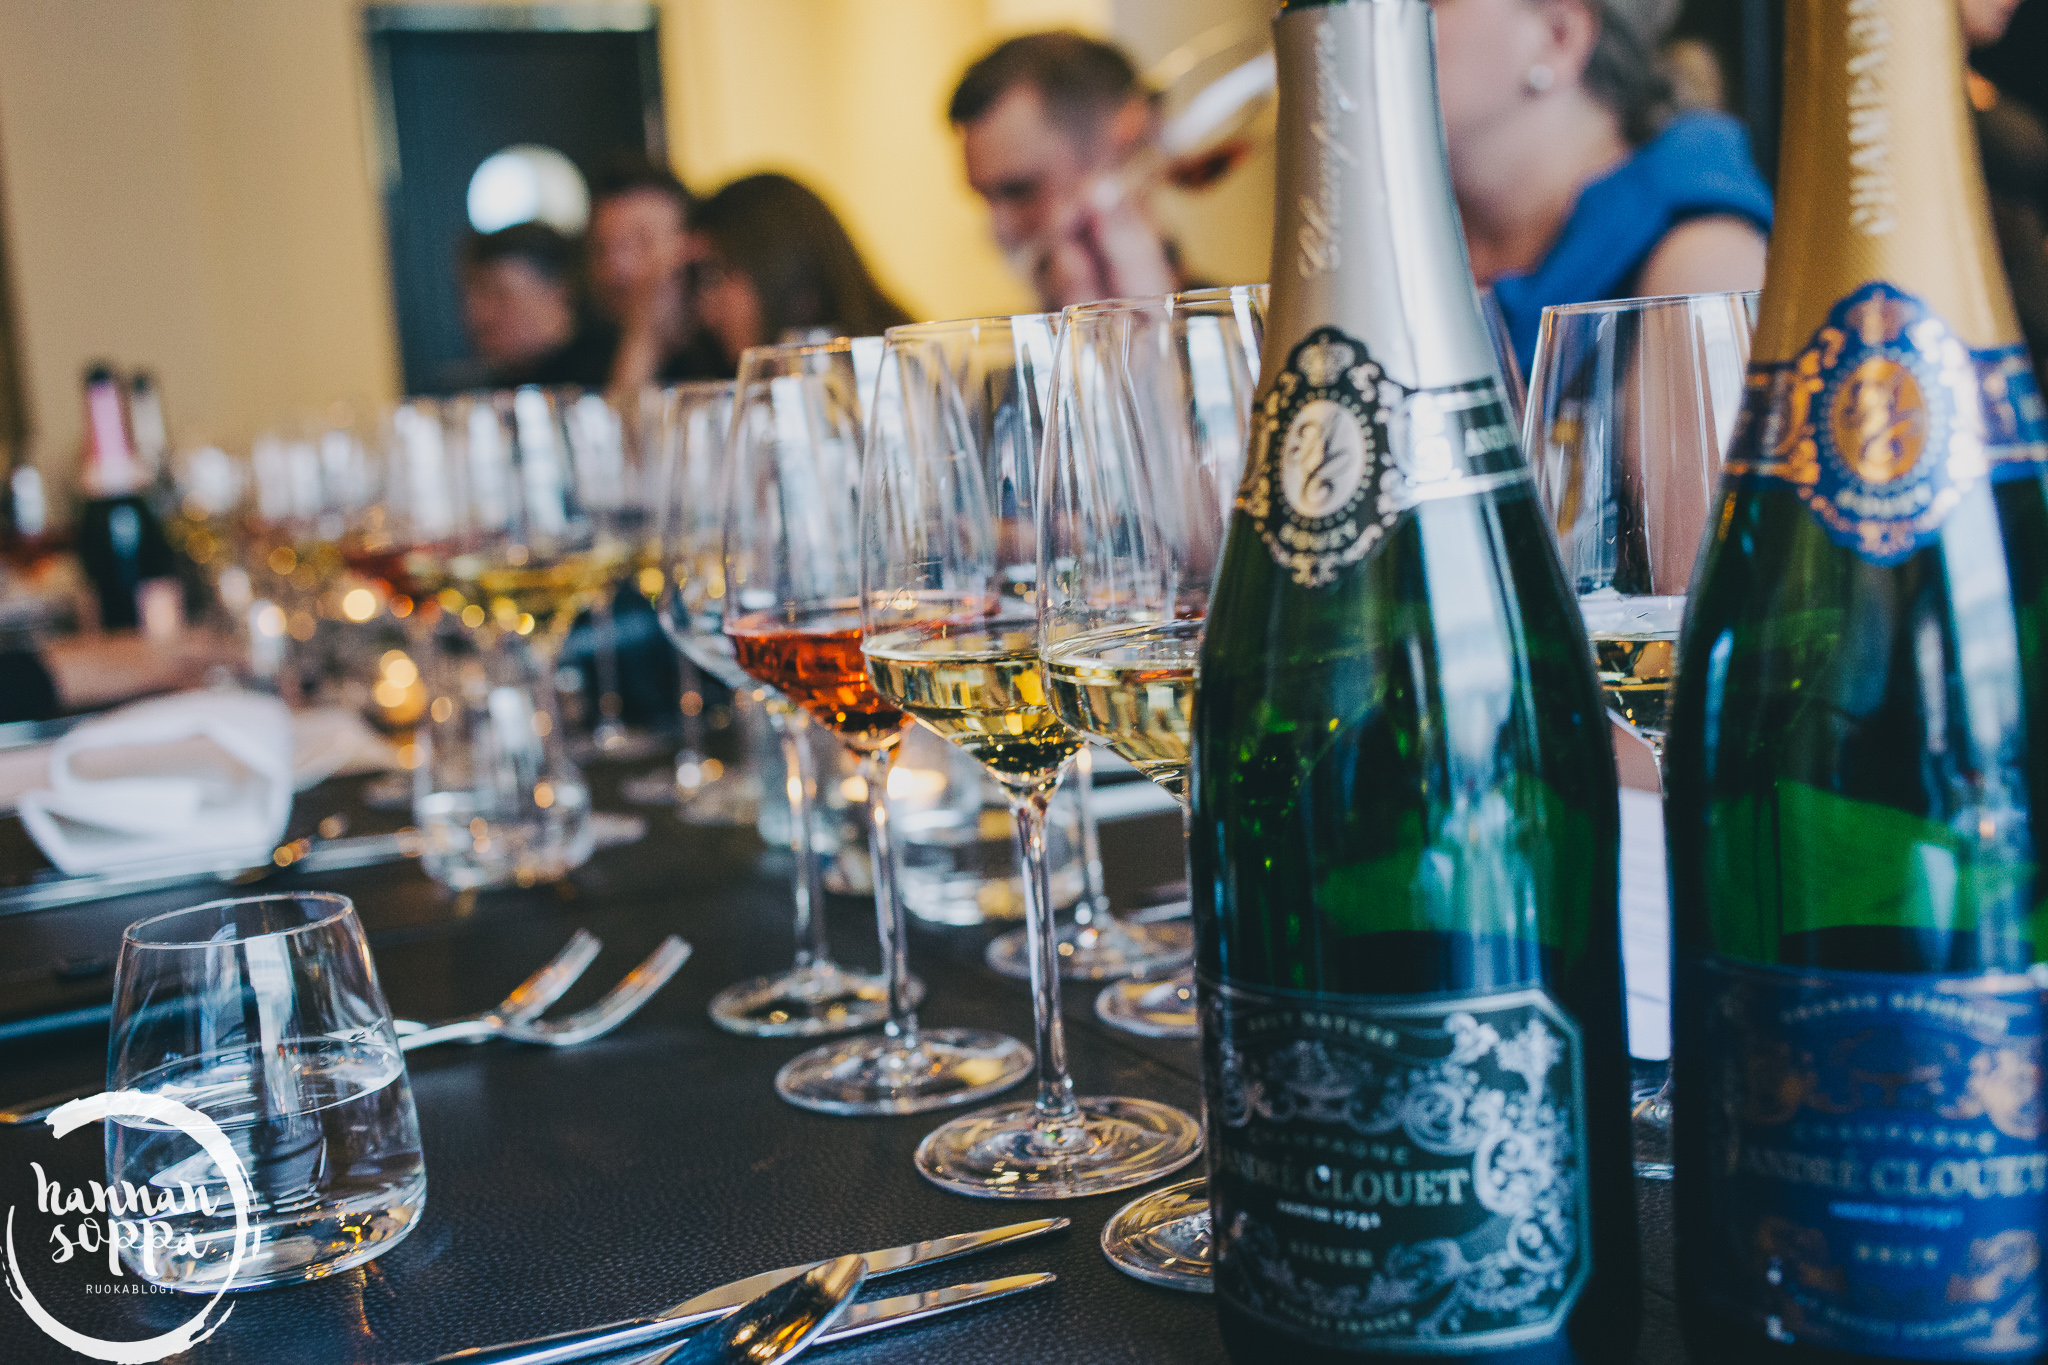 André Clouet champagne tasting / Hannan soppa